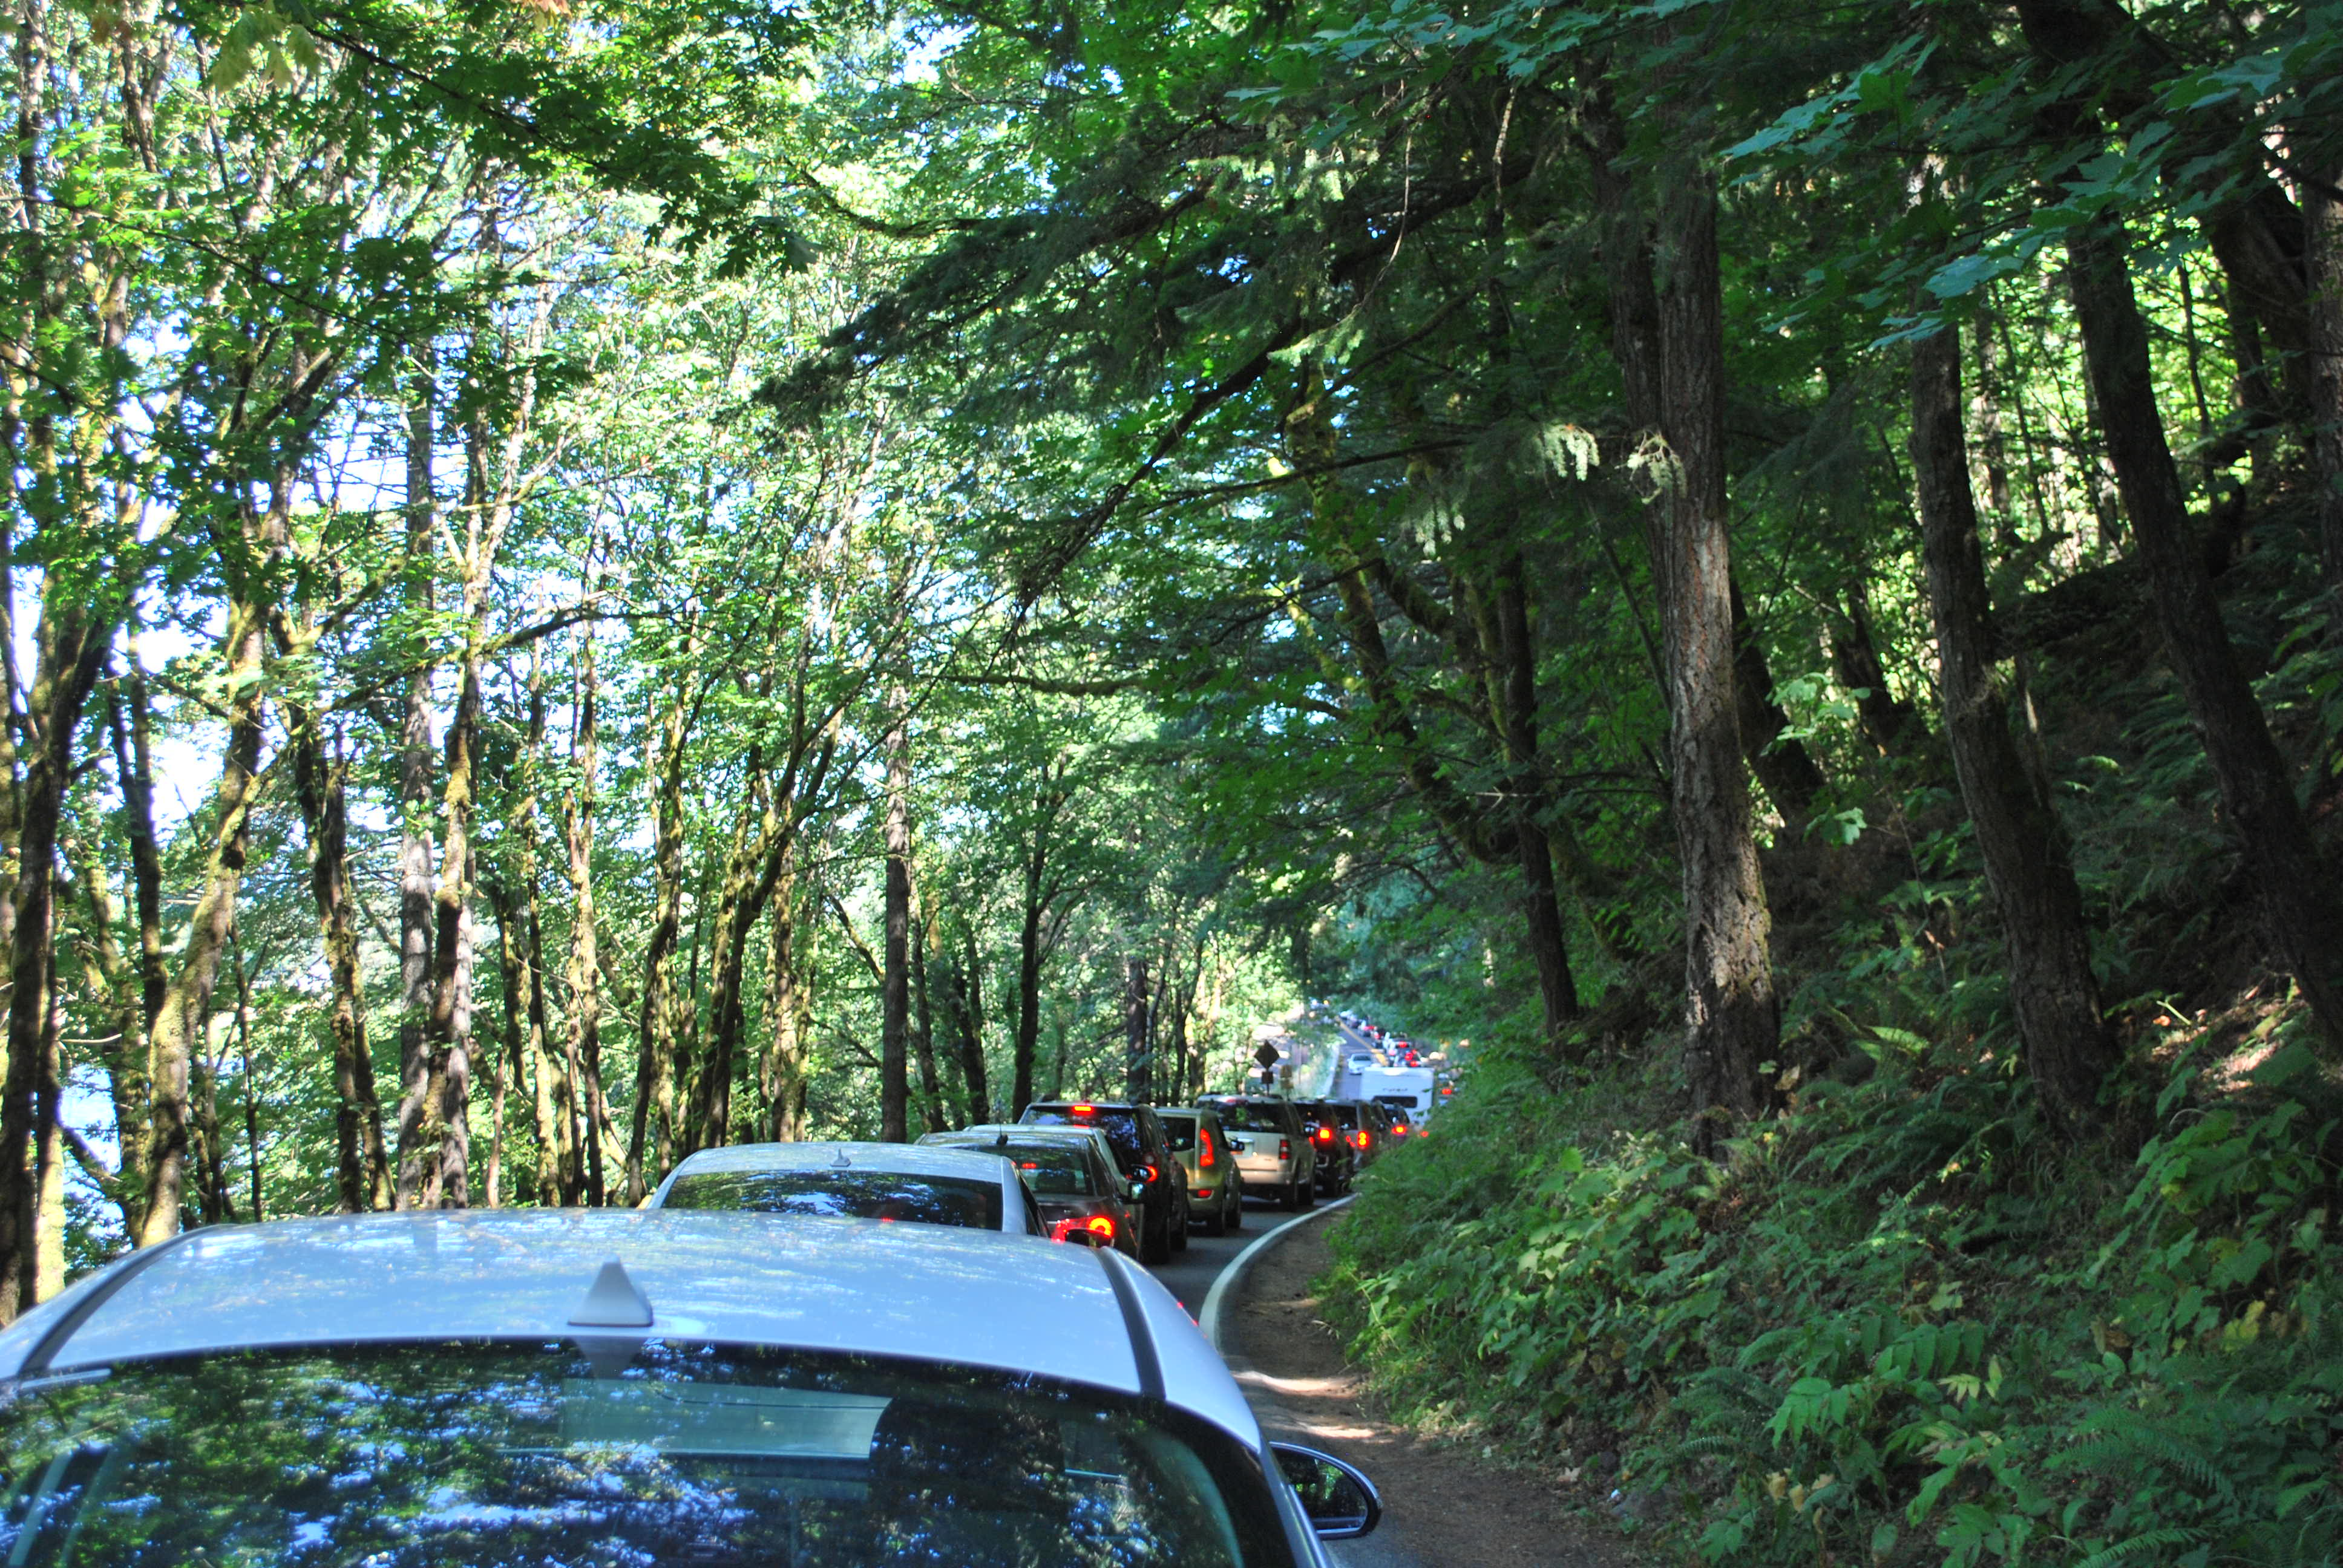 Cars stuck in congestion line the Historic Highway.